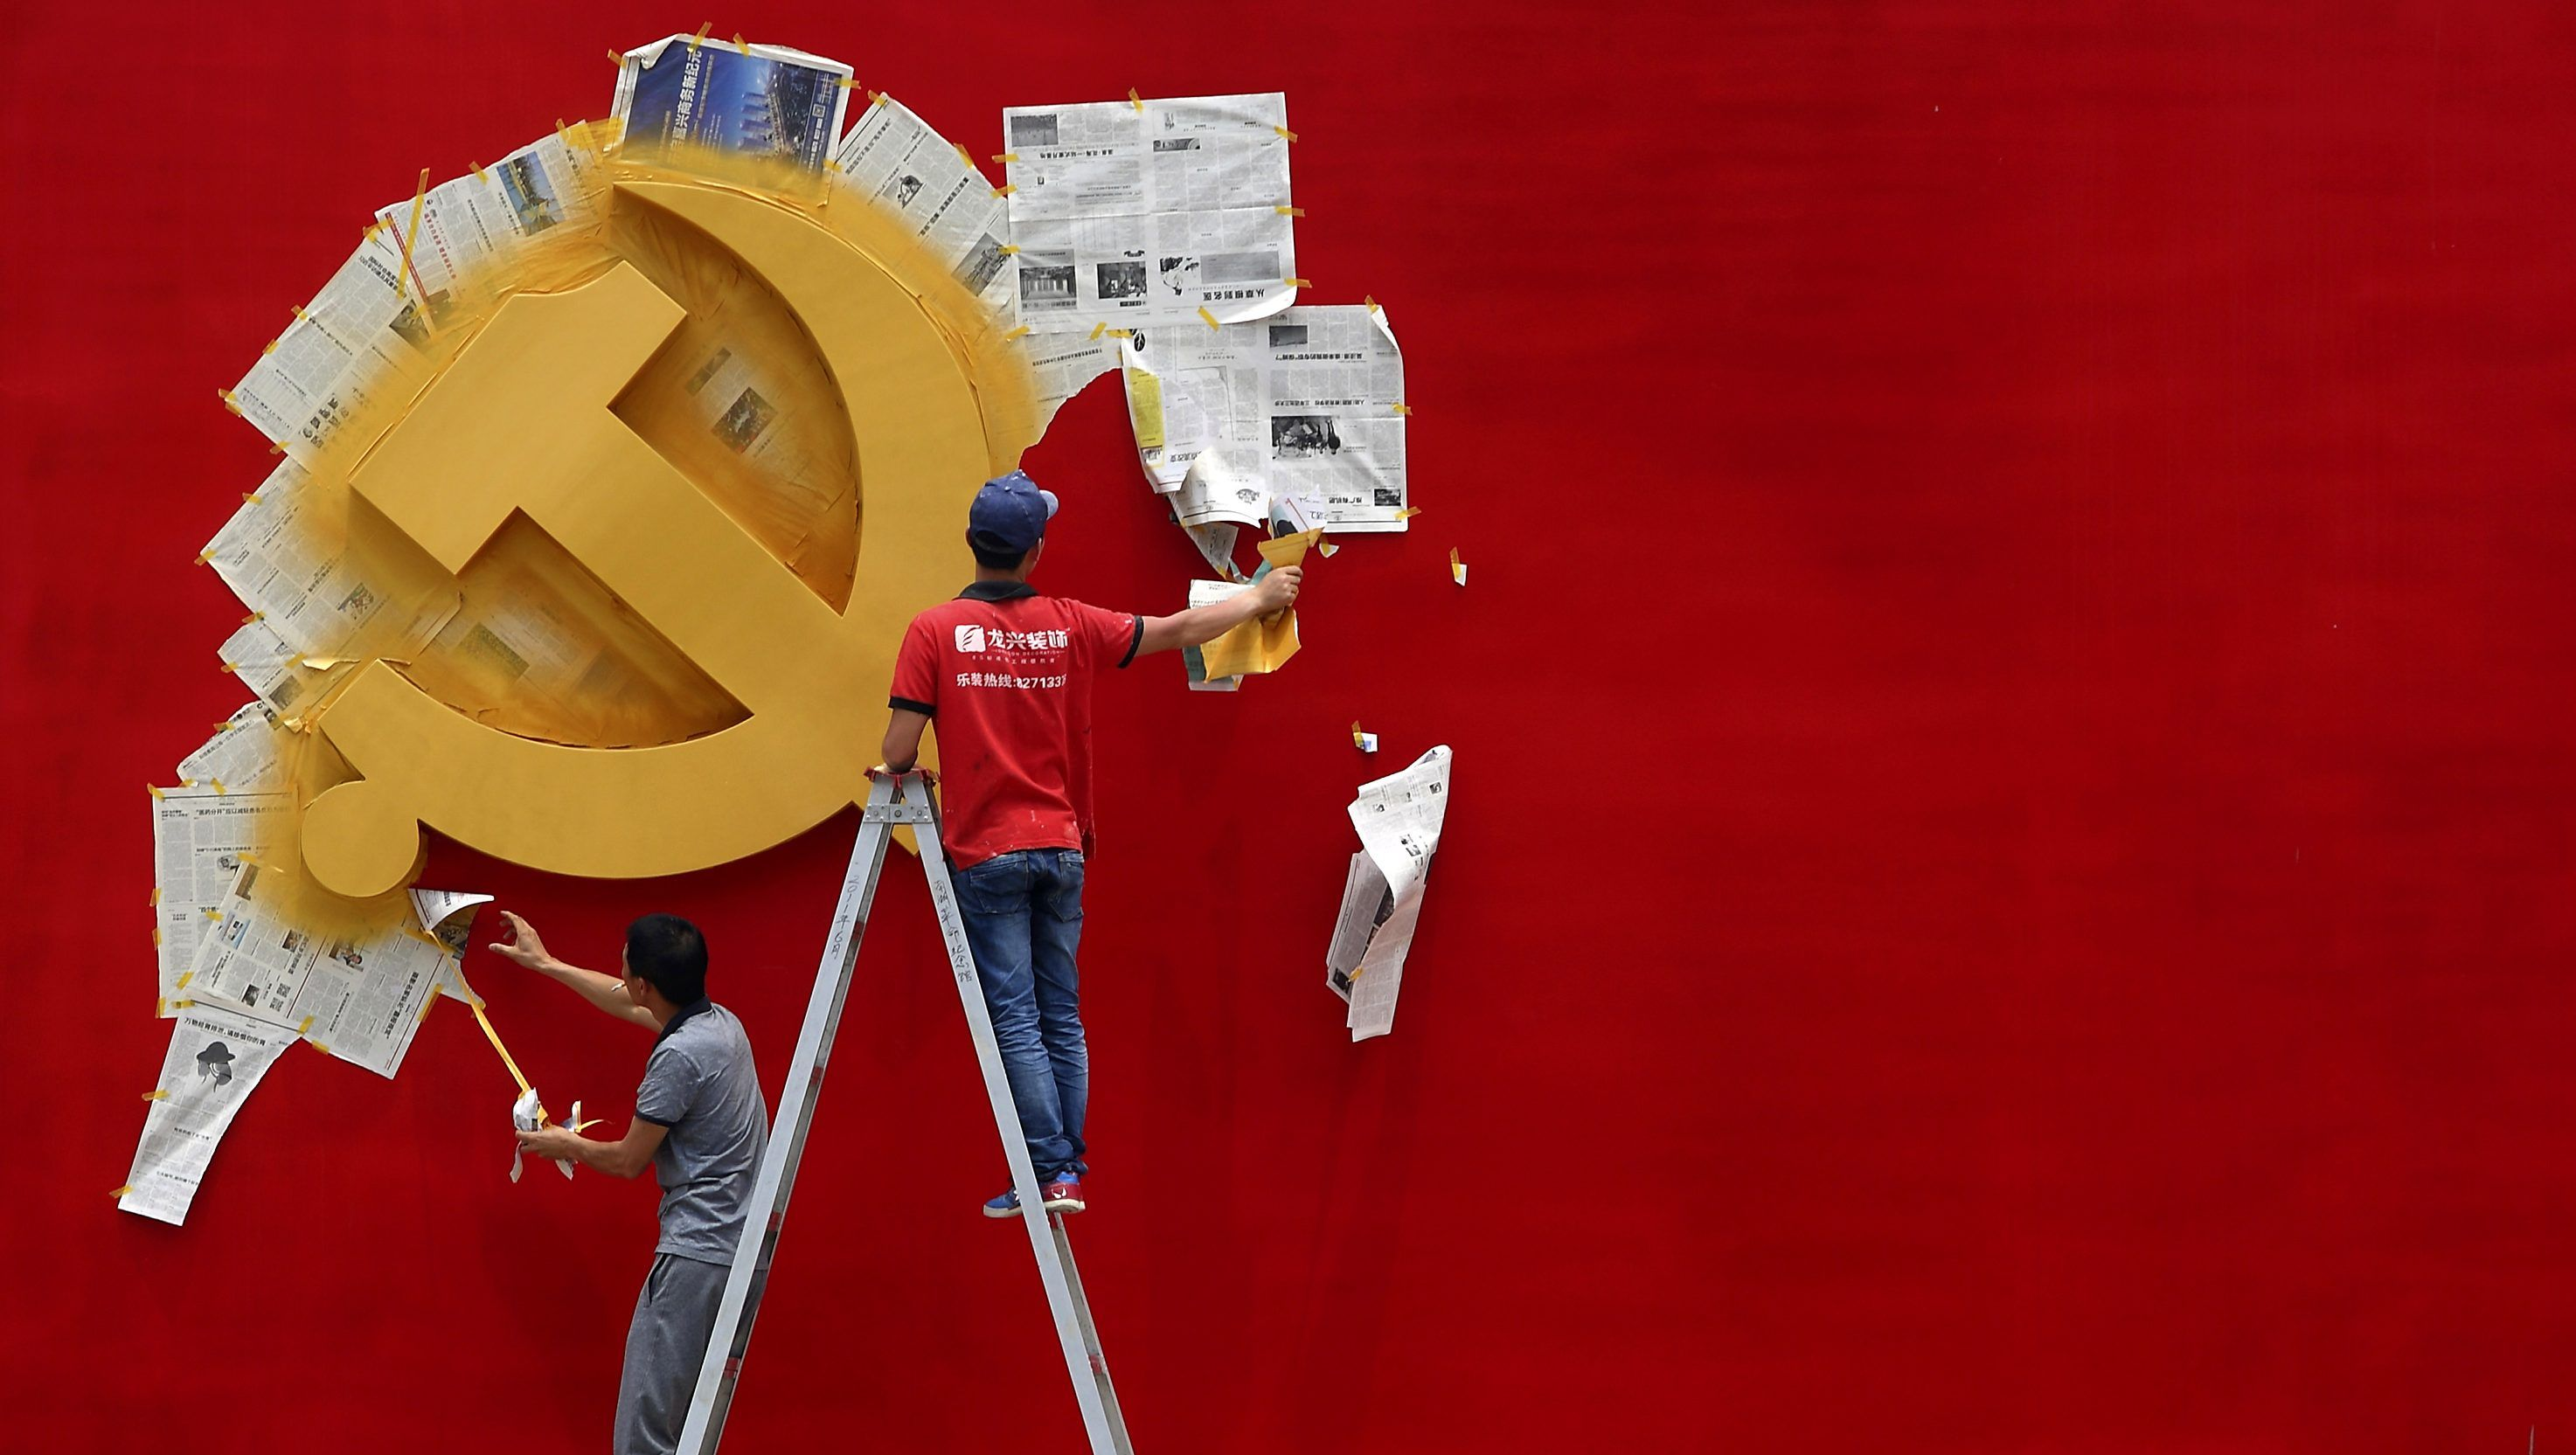 Workers peel papers off a wall as they re-paint the Chinese Communist Party flag on it at the Nanhu revolution memorial museum in Jiaxing, Zhejiang province May 21, 2014.